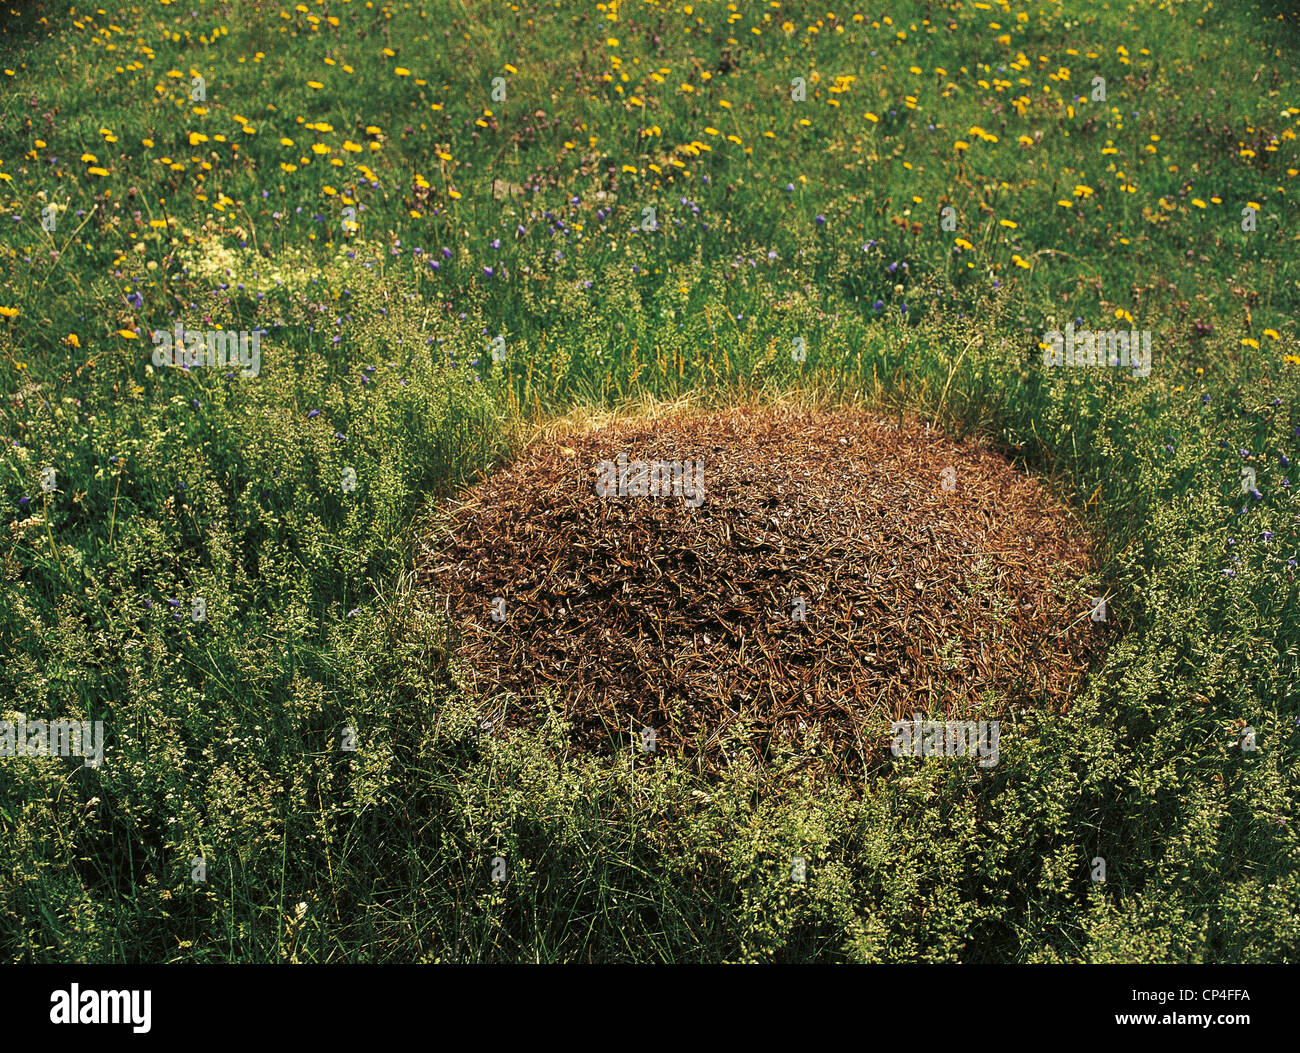 Zoology - Insects - Anthill. Lombardia, Parco Nazionale dello Stelvio, Val del Gallo (So). - Stock Image